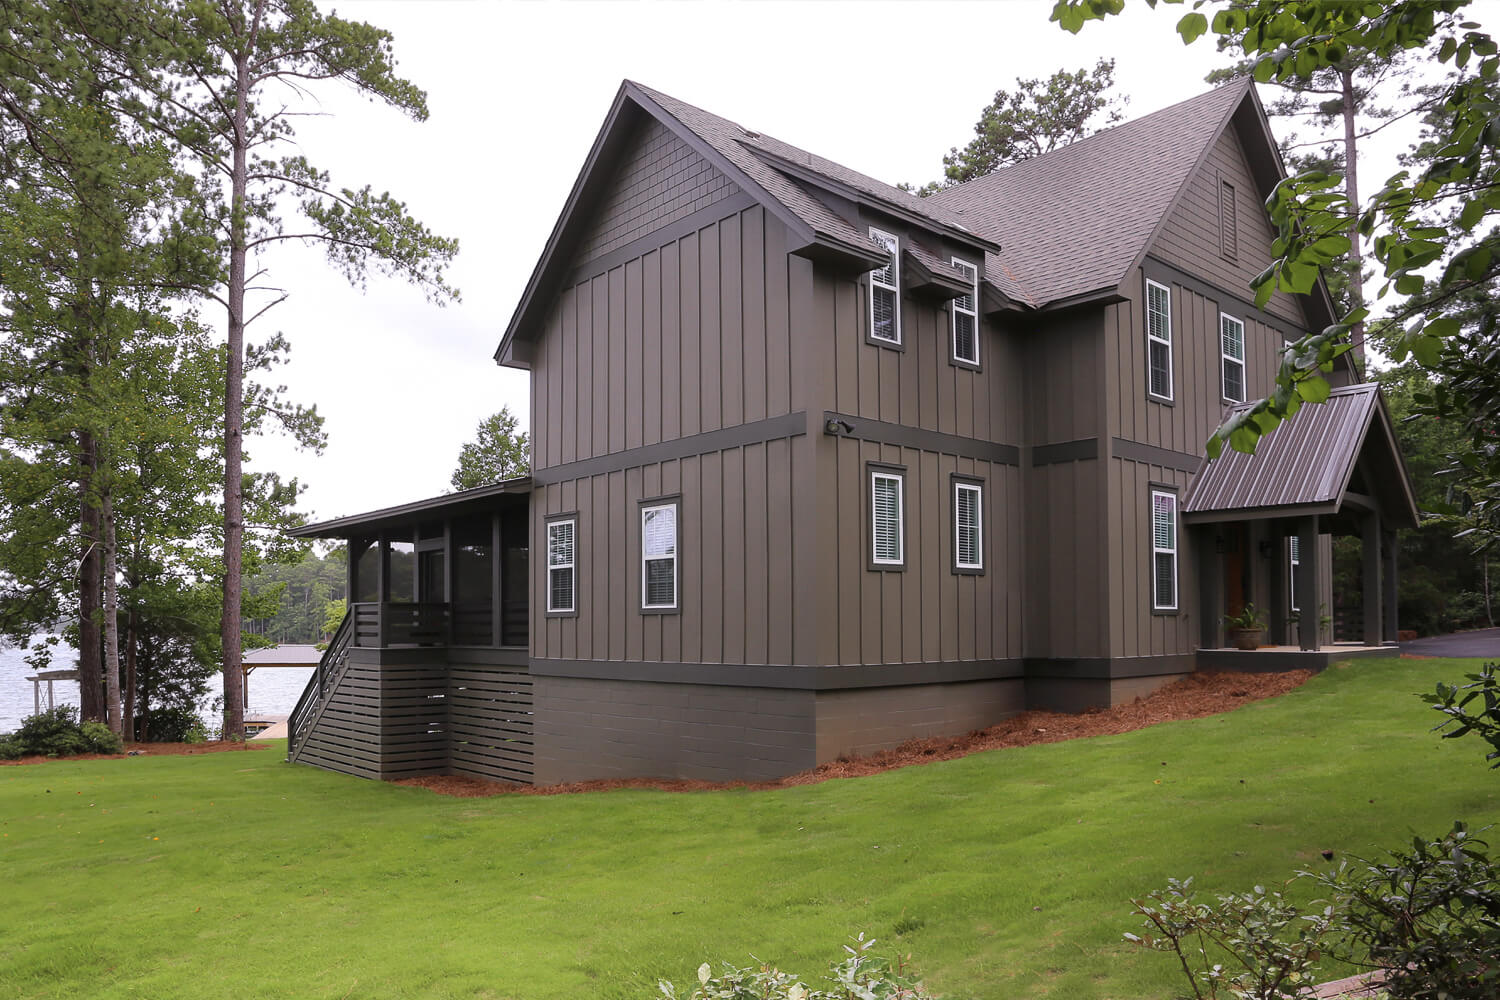 Lake Home - Side Elevation - Designed by Foshee Architecture